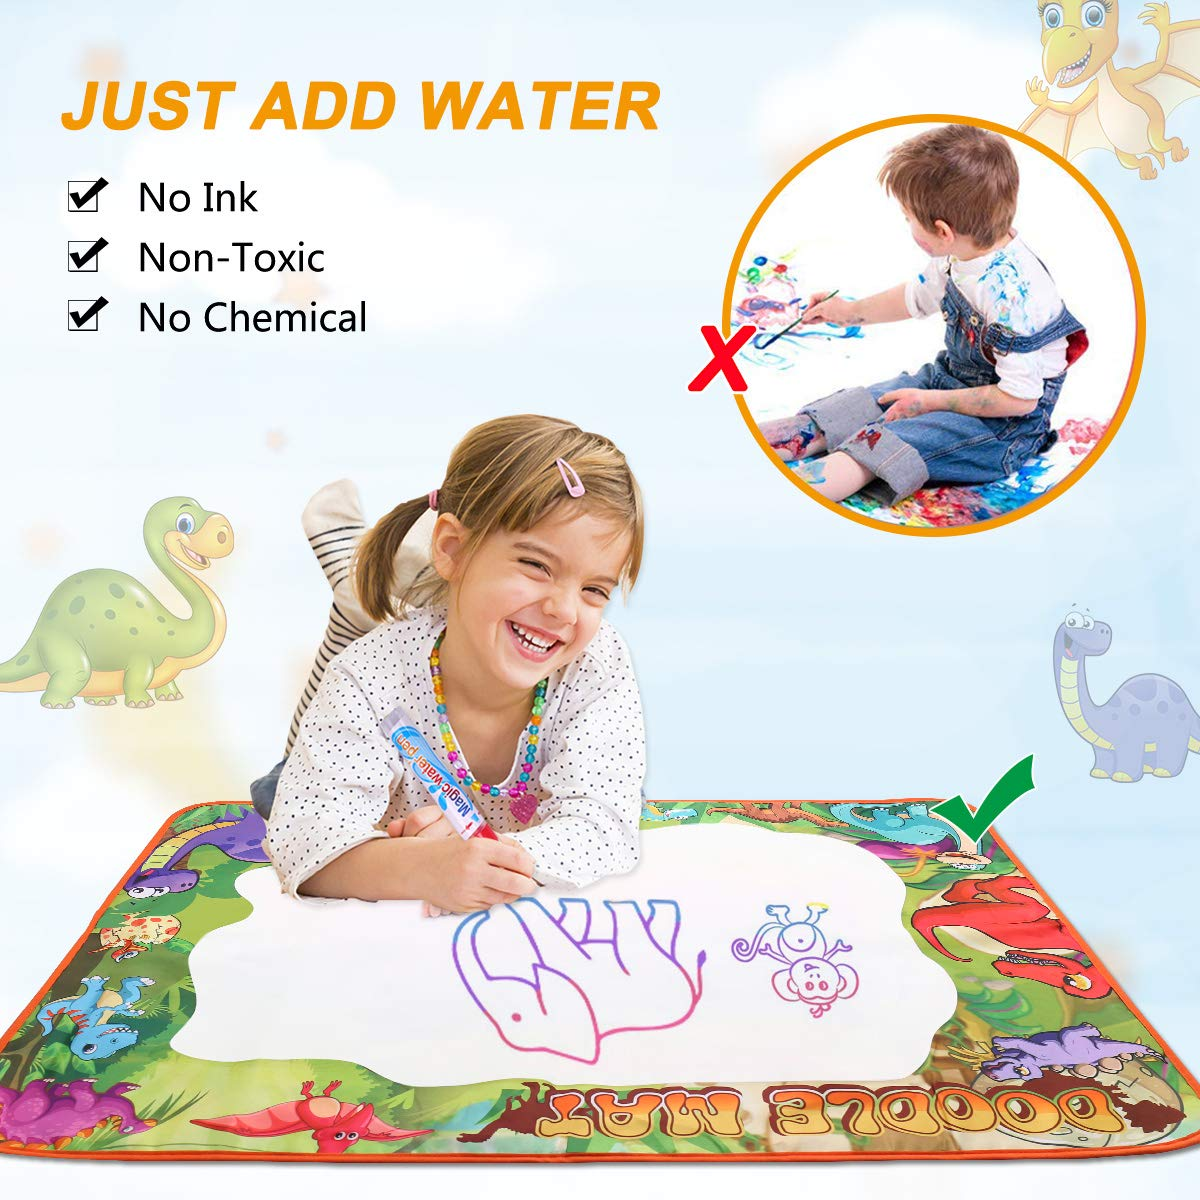 39.5 X 27.5 in 7 Color Doodle Drawing/Mat with Magic Roller and 3pen Educational Toys for Boys Girls Age 2 Conthfut Water/Drawing/mat Aqua Magic Doodle mat 39.5 X 27.5 in 7 Color Doodle Drawing/Mat with Magic Roller and 3pen